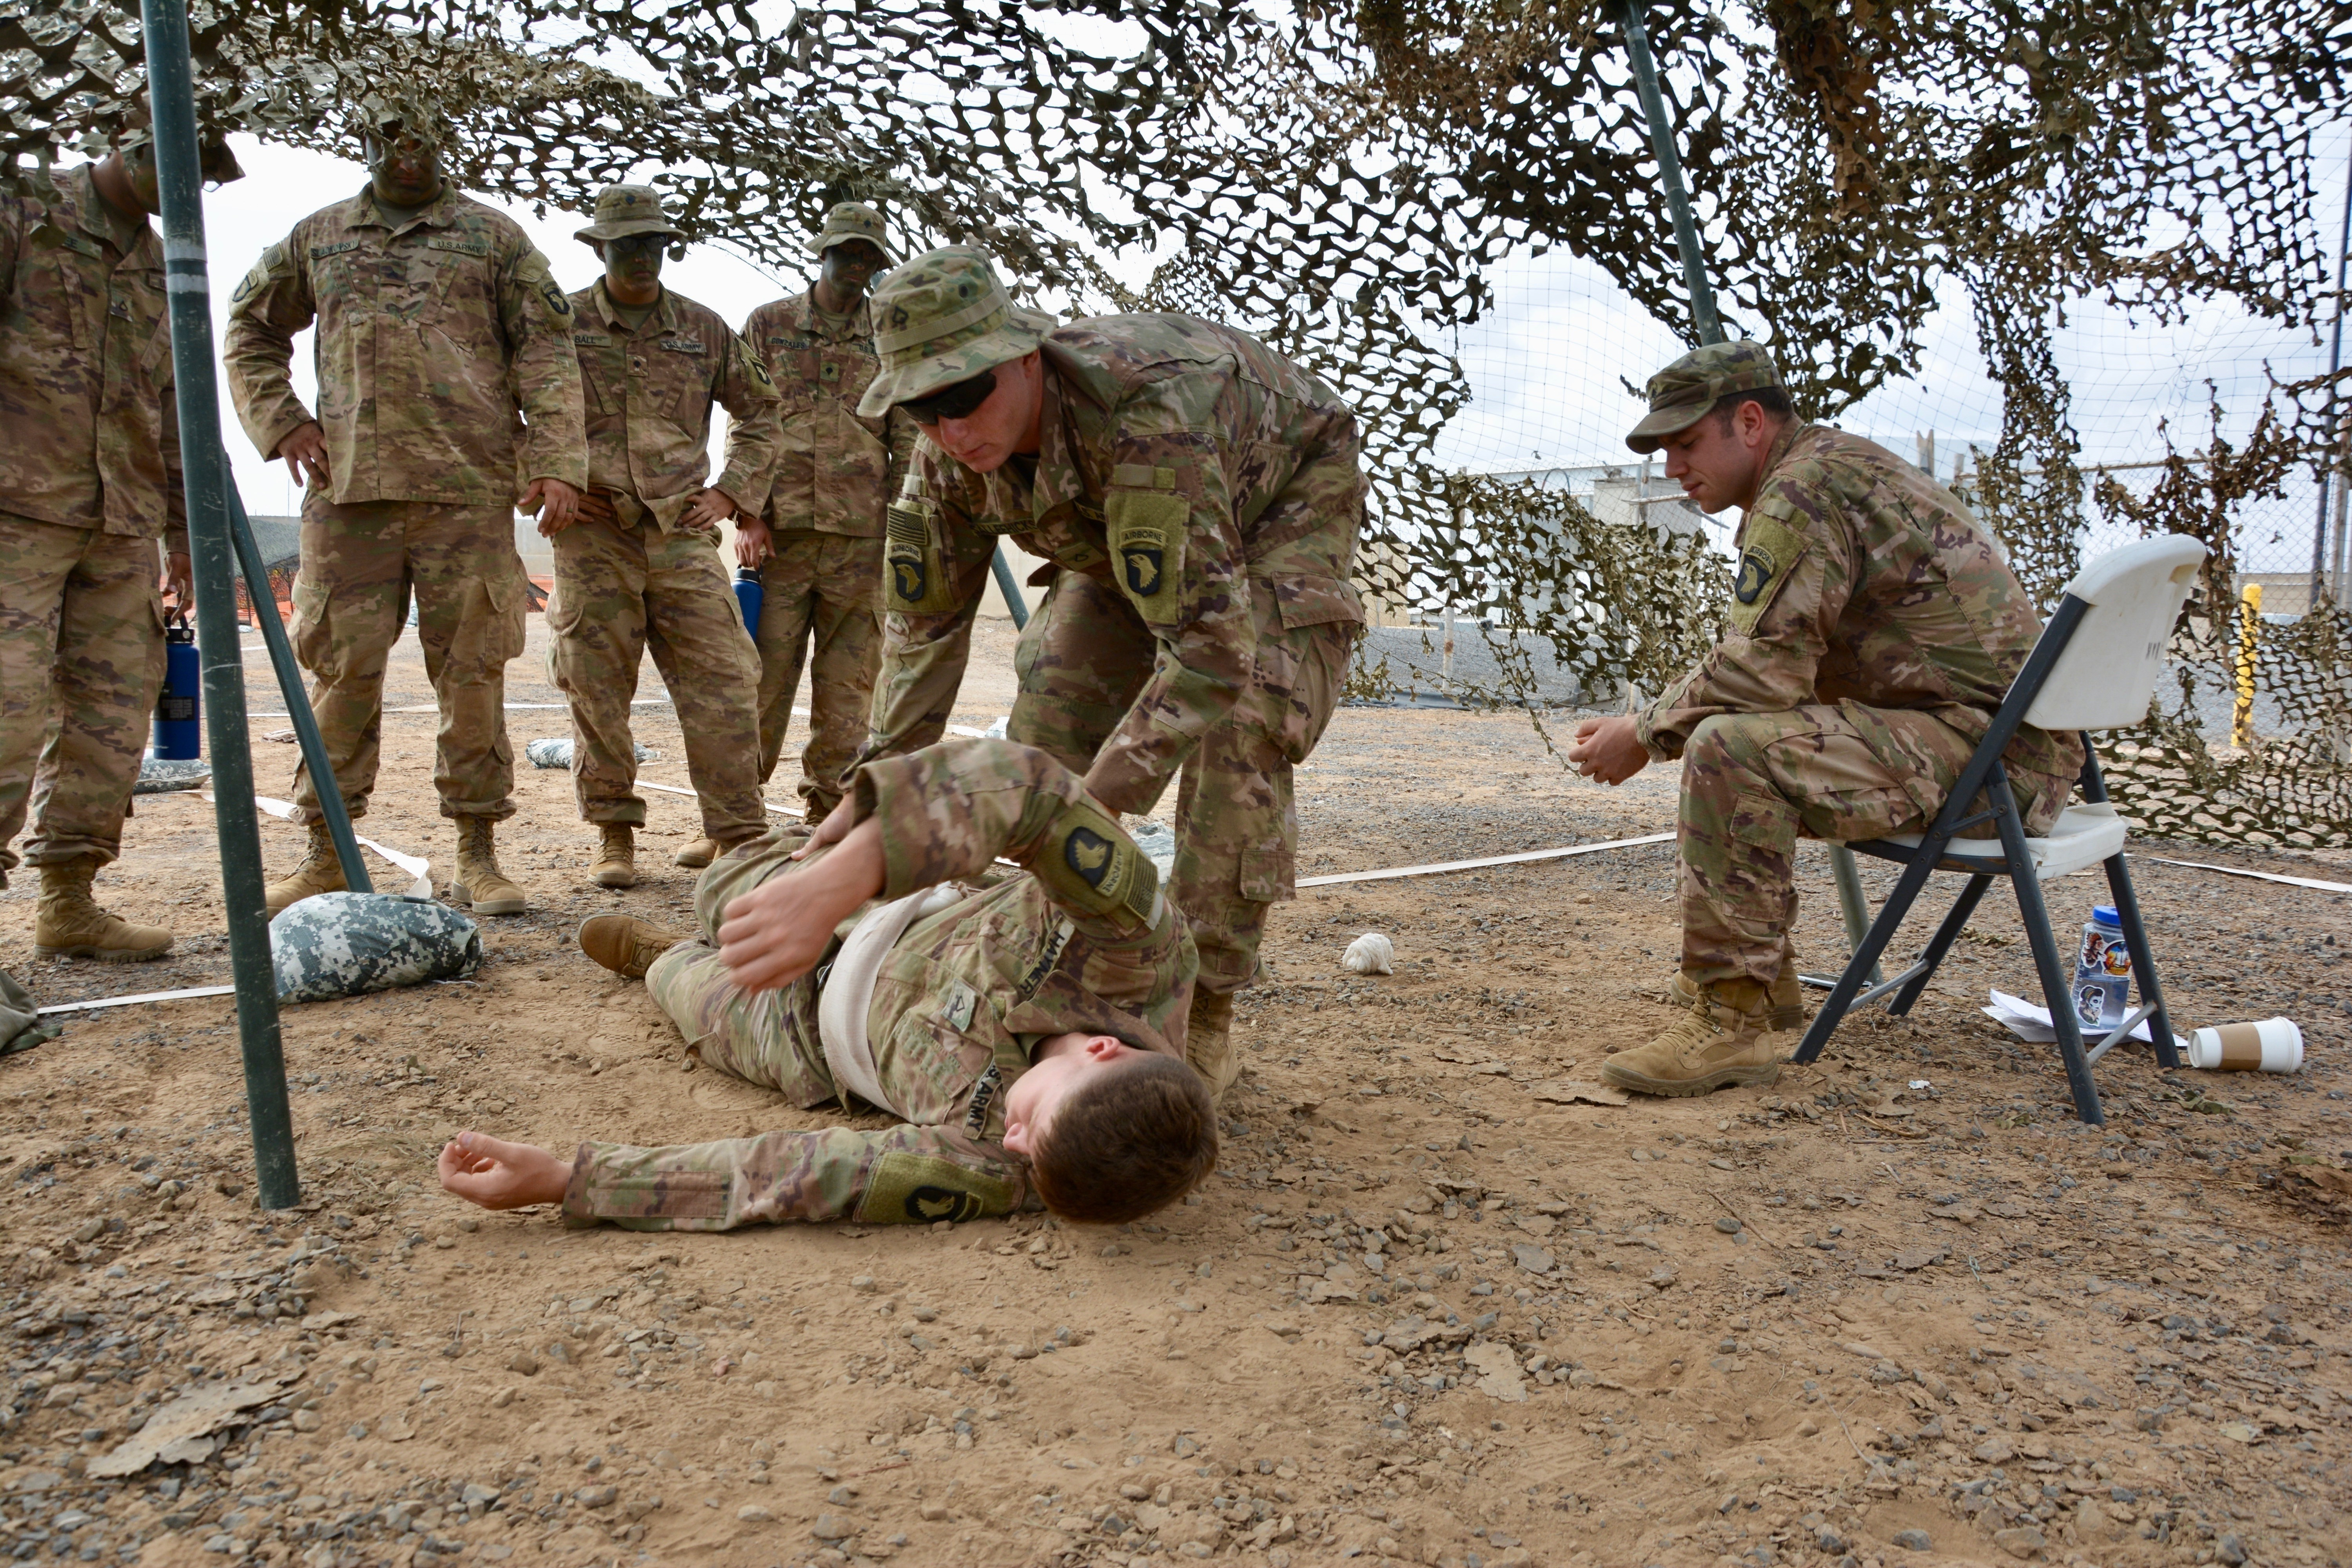 U.S. Army Pfc. Jessie Sallee-Hicks, assigned to Bravo Company, 1st Battalion, 26th Infantry Regiment, 101st Airborne Division, treats a Soldier for an abdominal wound and eye injuring during training for the Expert Infantryman Badge at Camp Lemonnier, Djibouti, Dec. 18, 2018. Members of the Fort Campbell, Kentucky unit demonstrated a mastery of critical skills that reinforce their ability to respond to emergency situations at U.S. Embassies in the East African region as members of the Combined Joint Task Force-Horn of Africa (CJTF-HOA), East Africa Response Force (EARF).